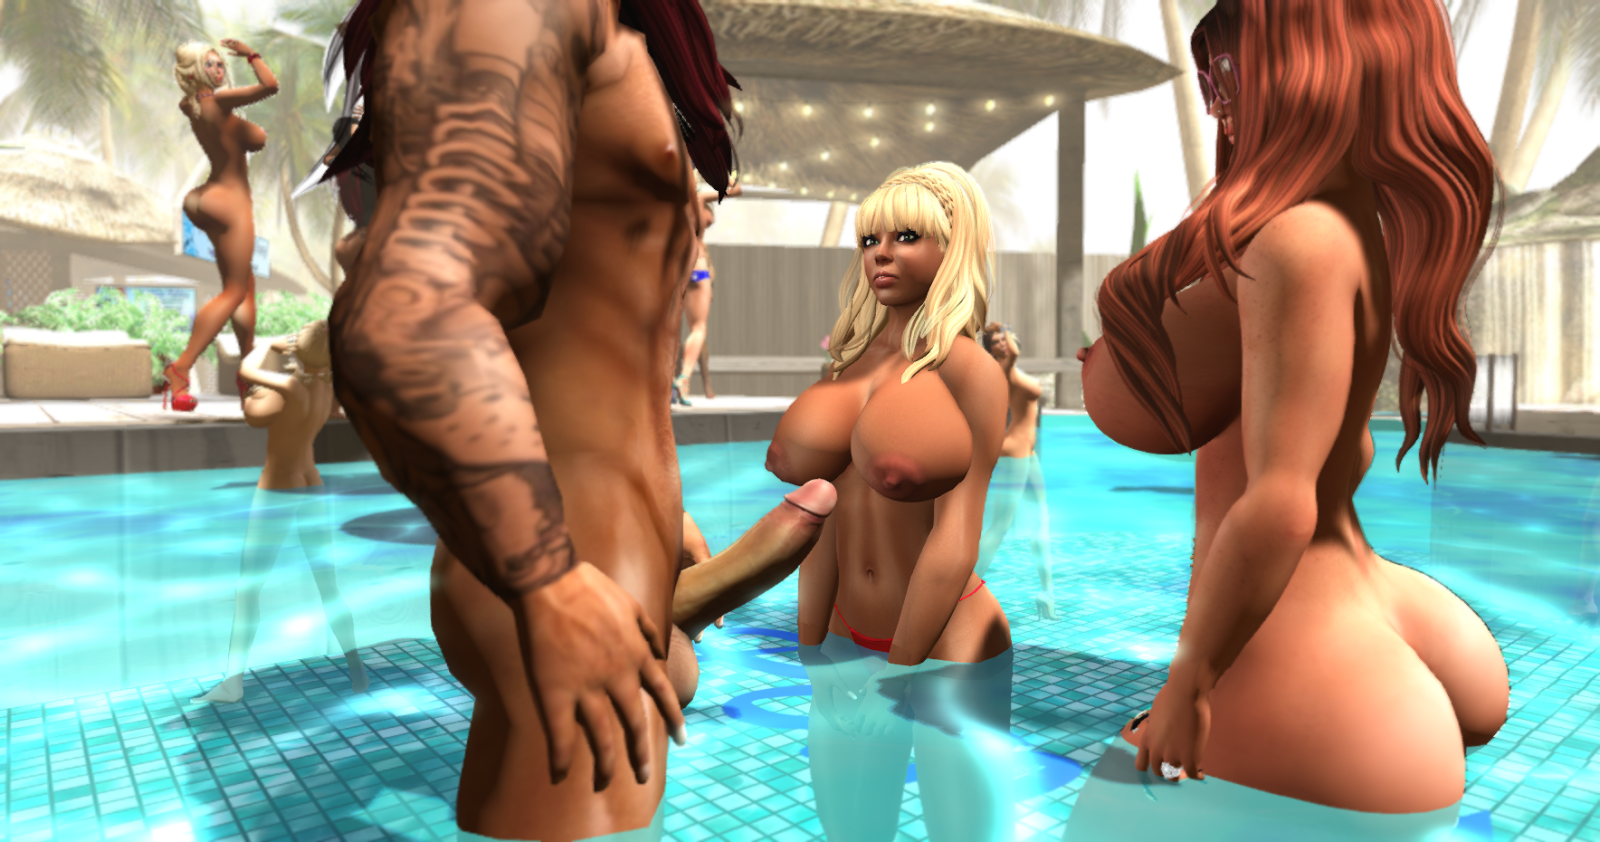 Second life sex xxx nudes download